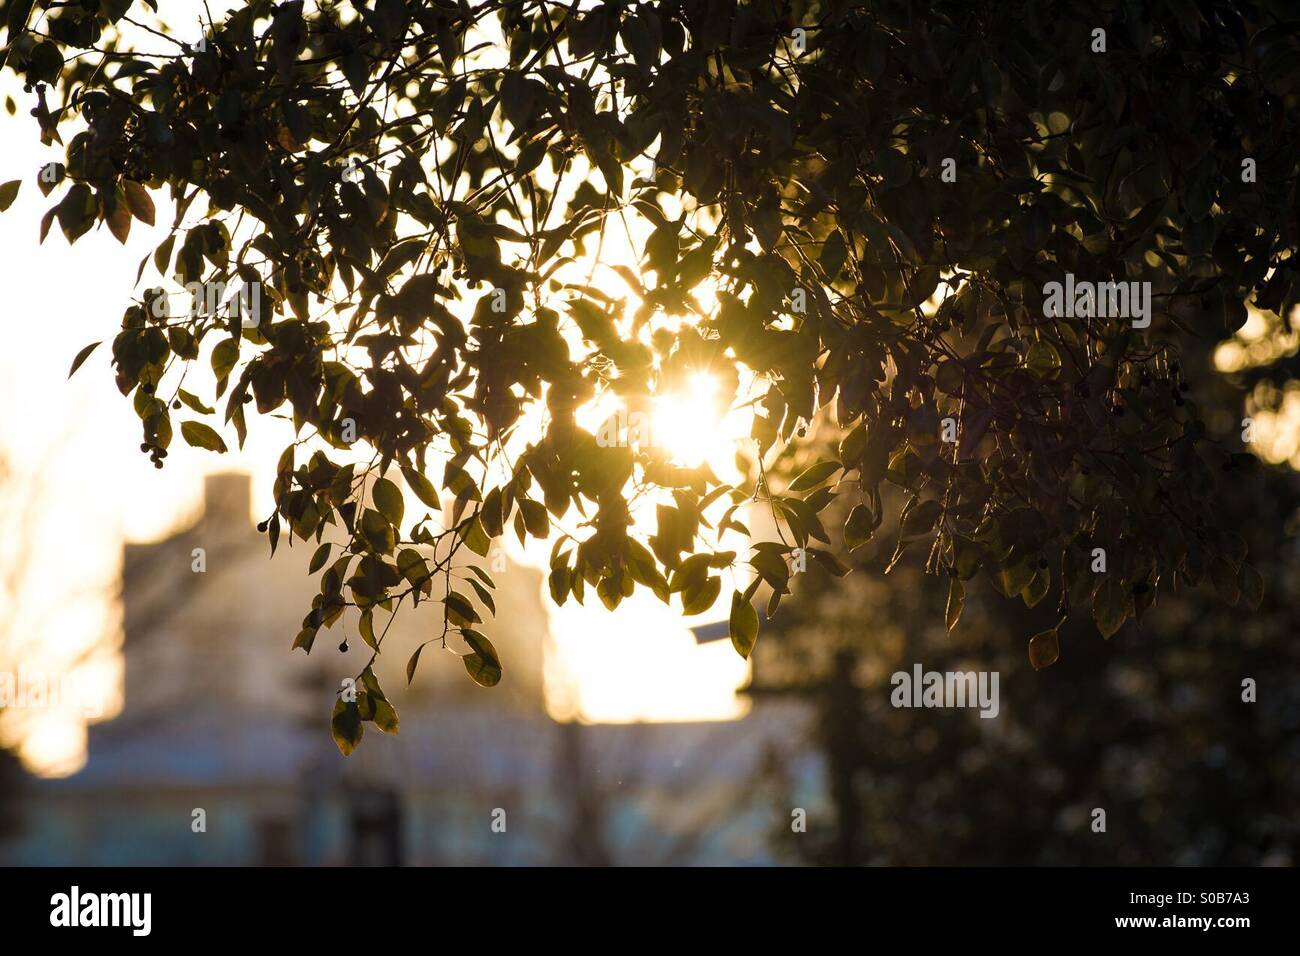 Glimmering leaves - Stock Image